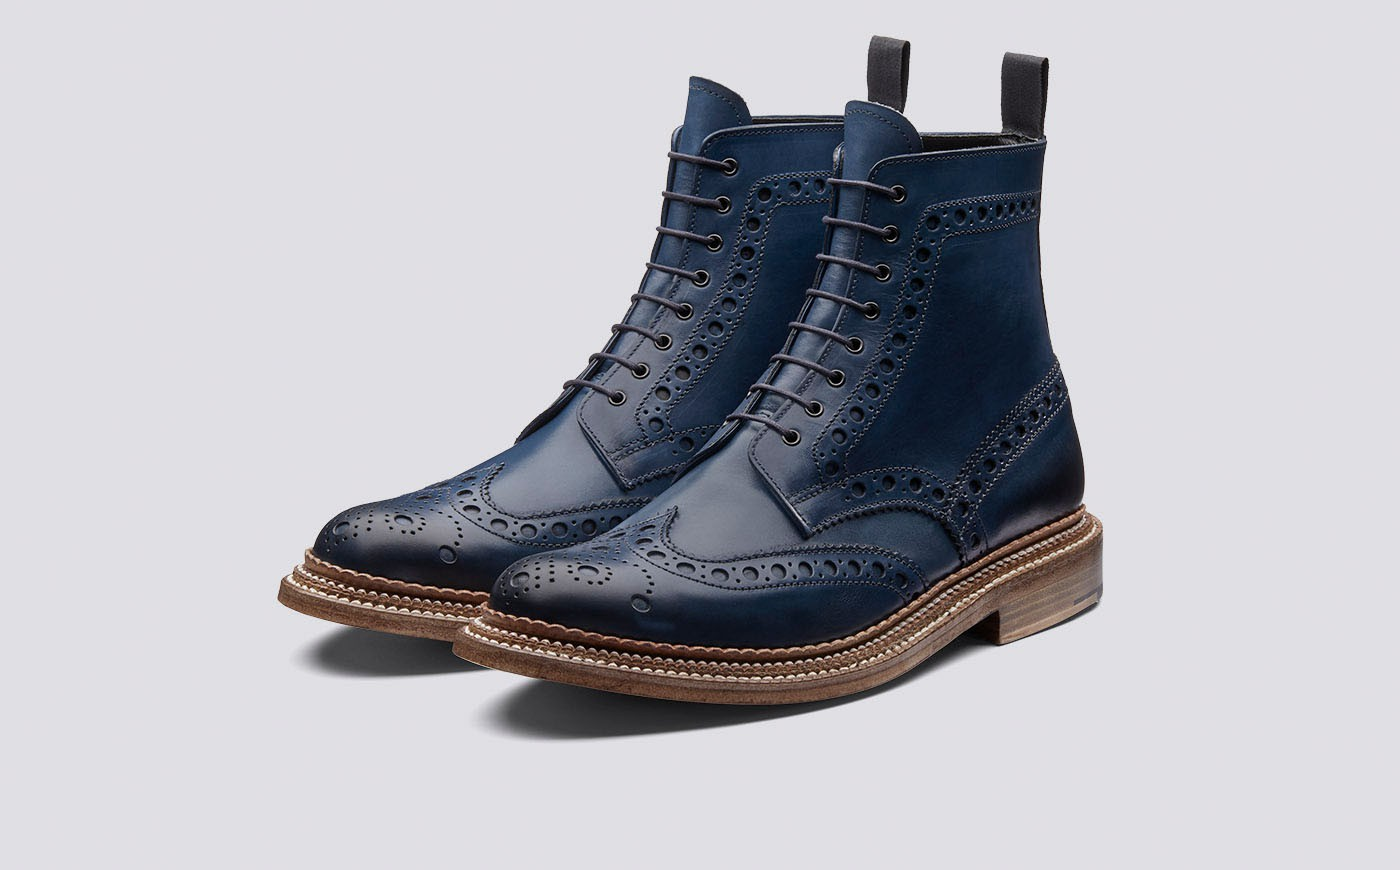 110250_-_fred_-_midnight_hand_painted_calf_leather_-_brogue_boot_-_tw_leather_sole_-_3_quarter.jpg